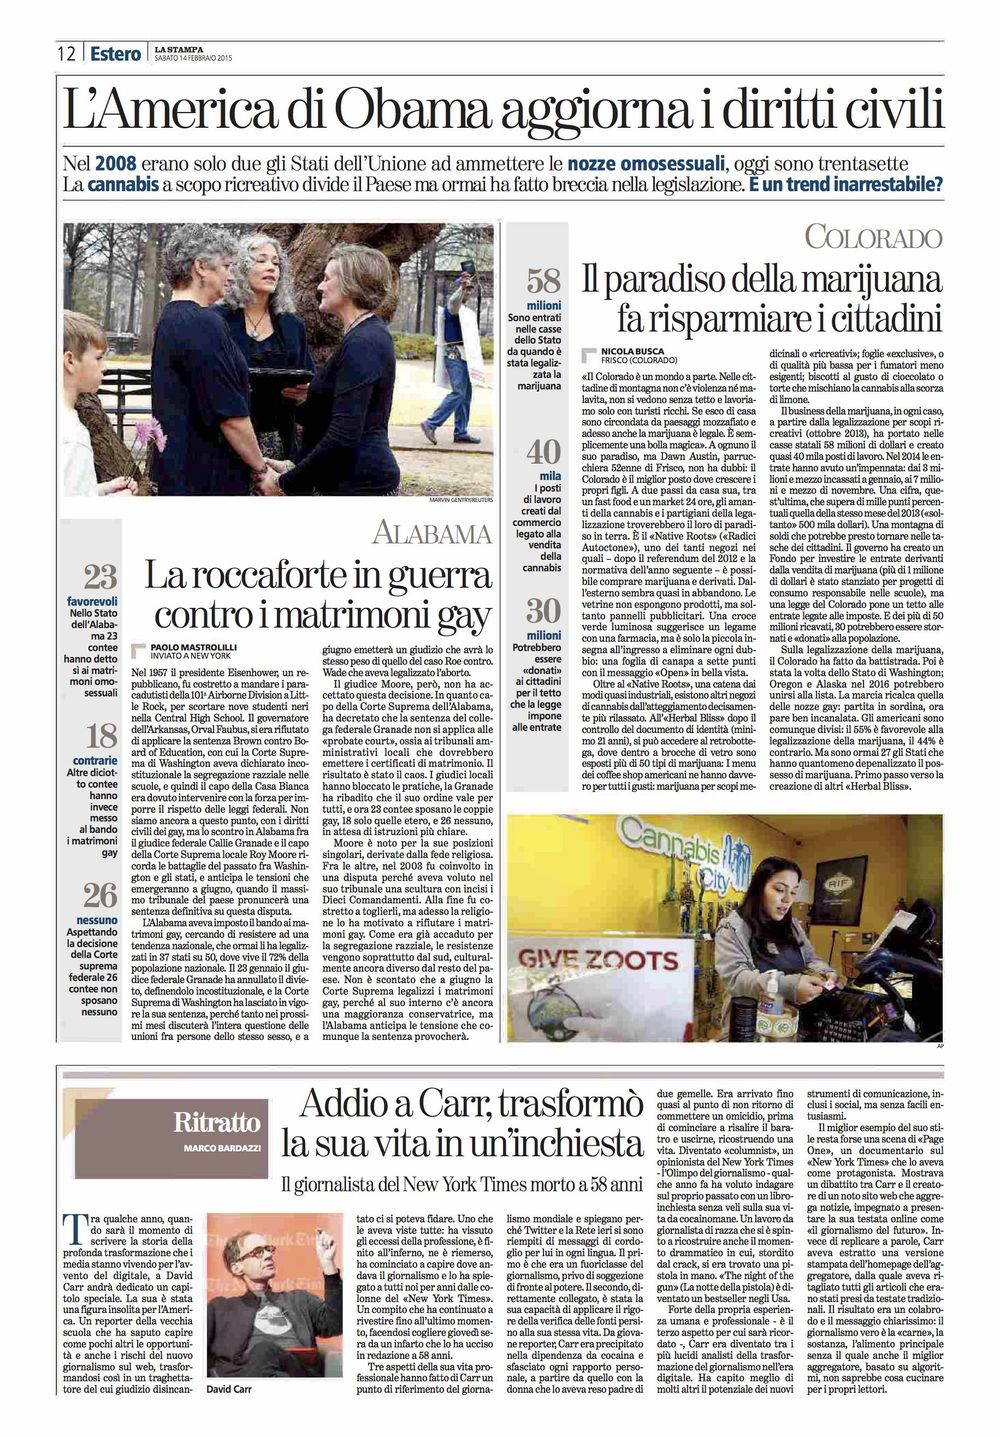 La Stampa (ITA). Reportage on the marijuana incomes in Colorado. 02-14-15